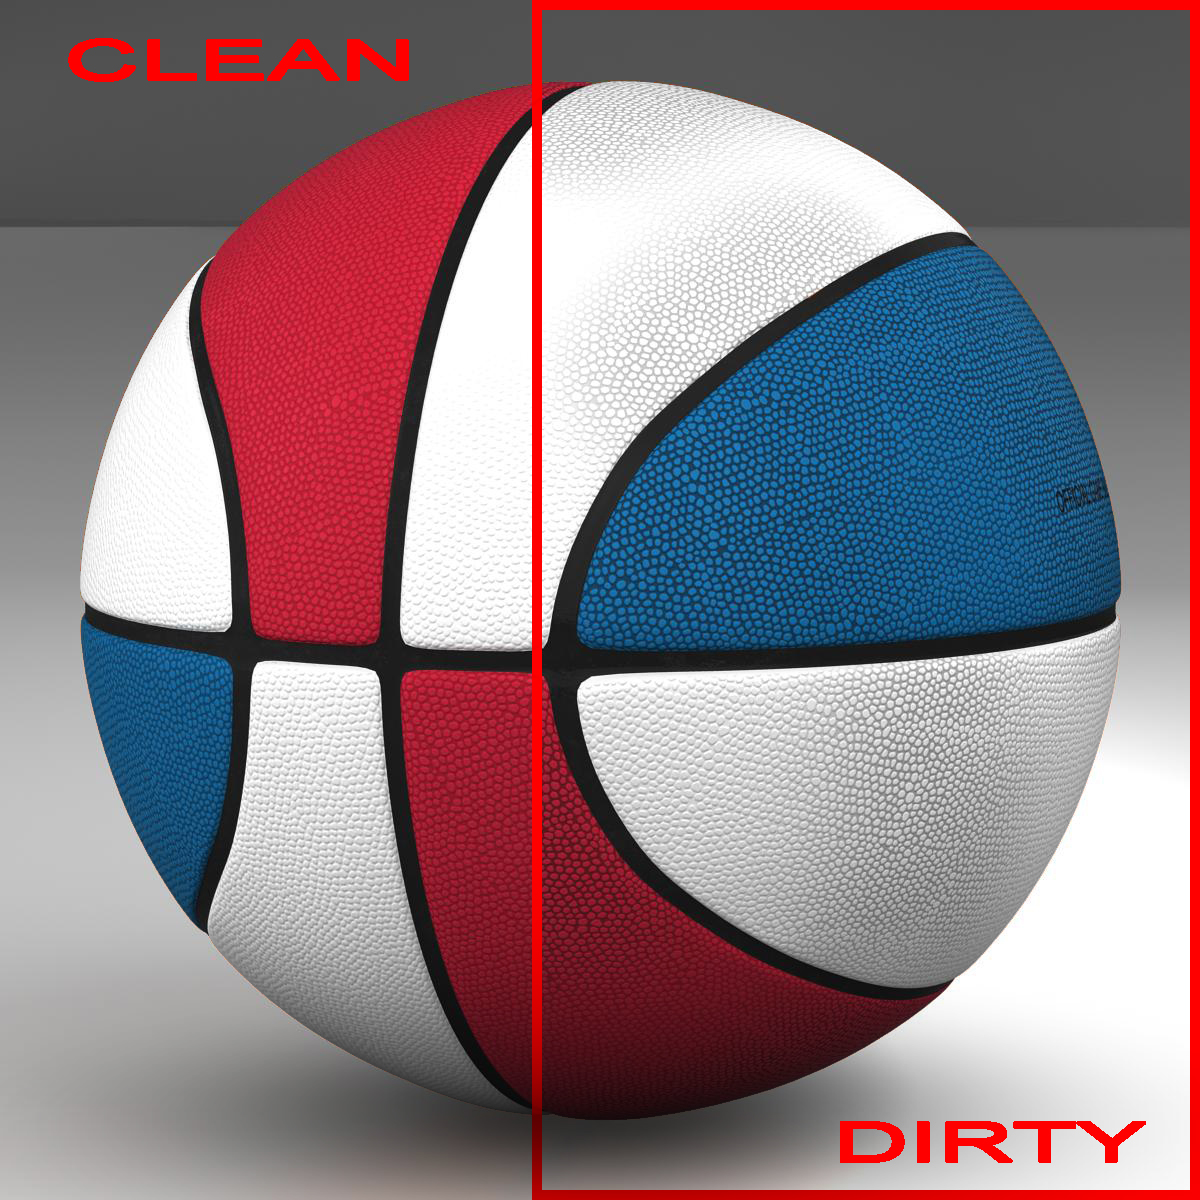 tricolor bola basket bola 3d model 3ds max fbx c4d ma mb obj 164846